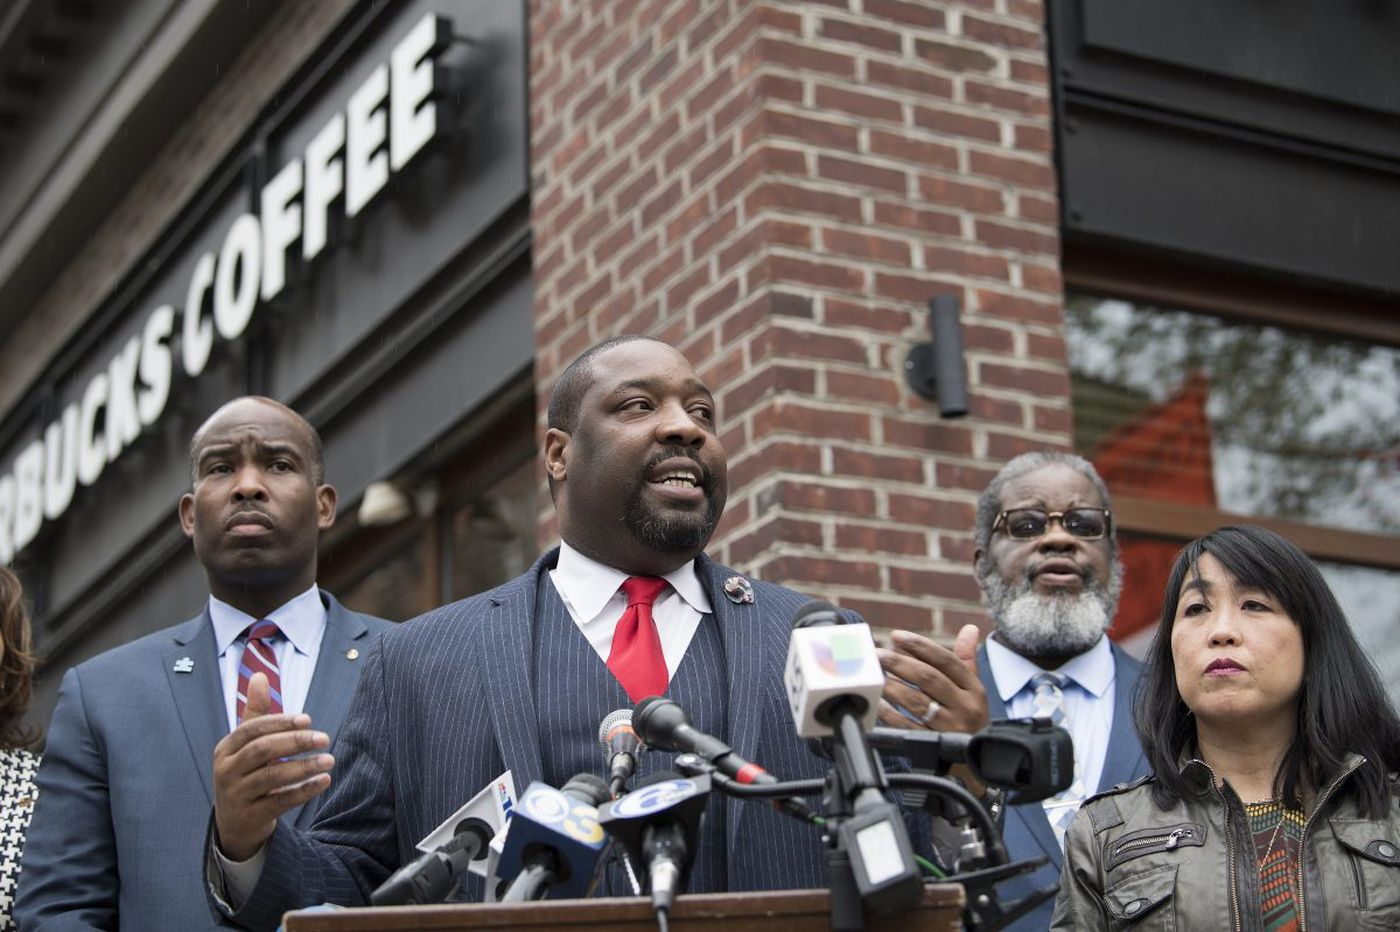 Instead of focusing on Starbucks, Philly politicians should look to fix police practices | Opinion